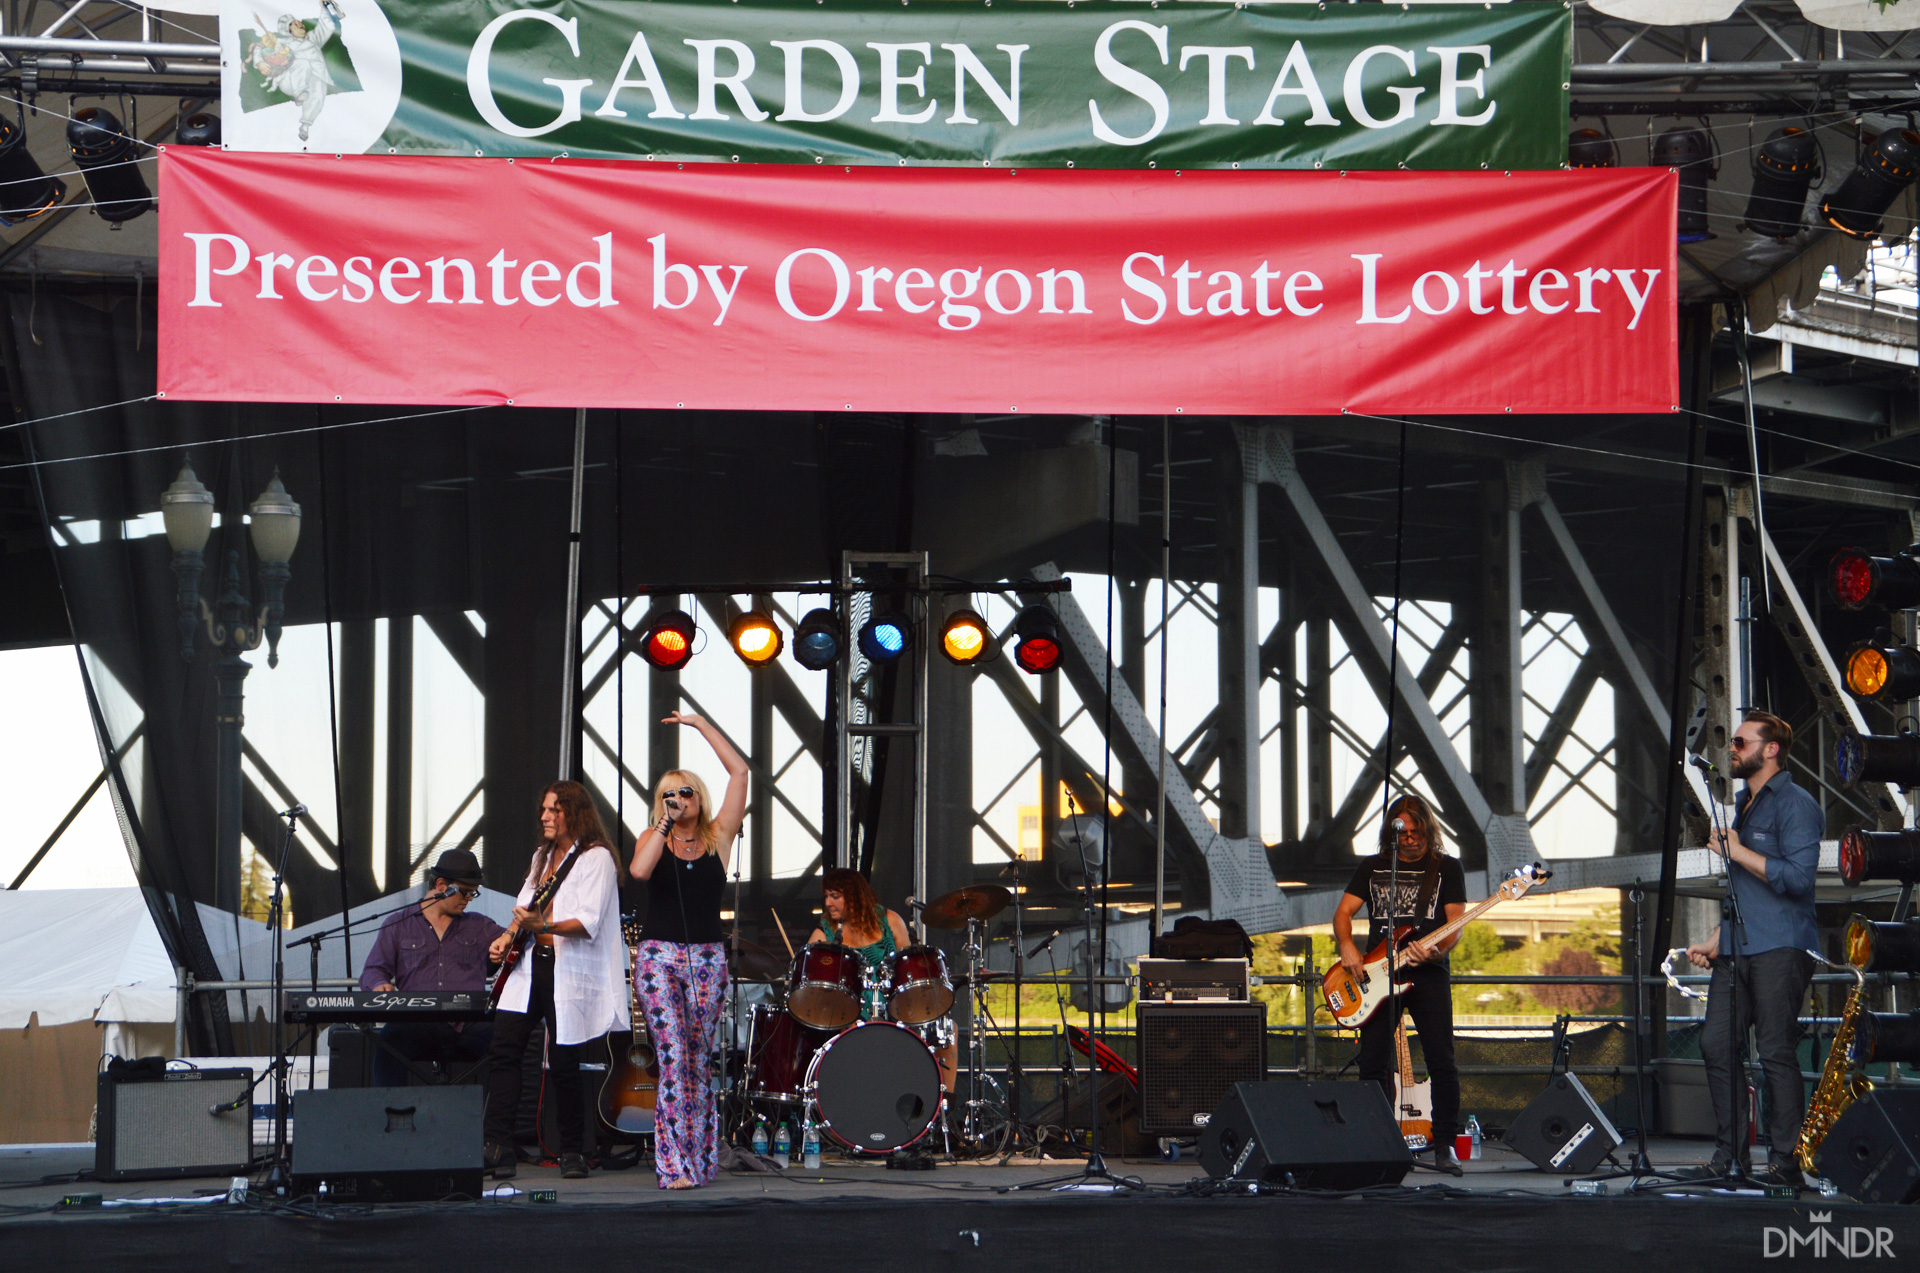 Michelle DeCourcy and the Rocktarts erforming at the Bite of Oregon on the Garden Stage